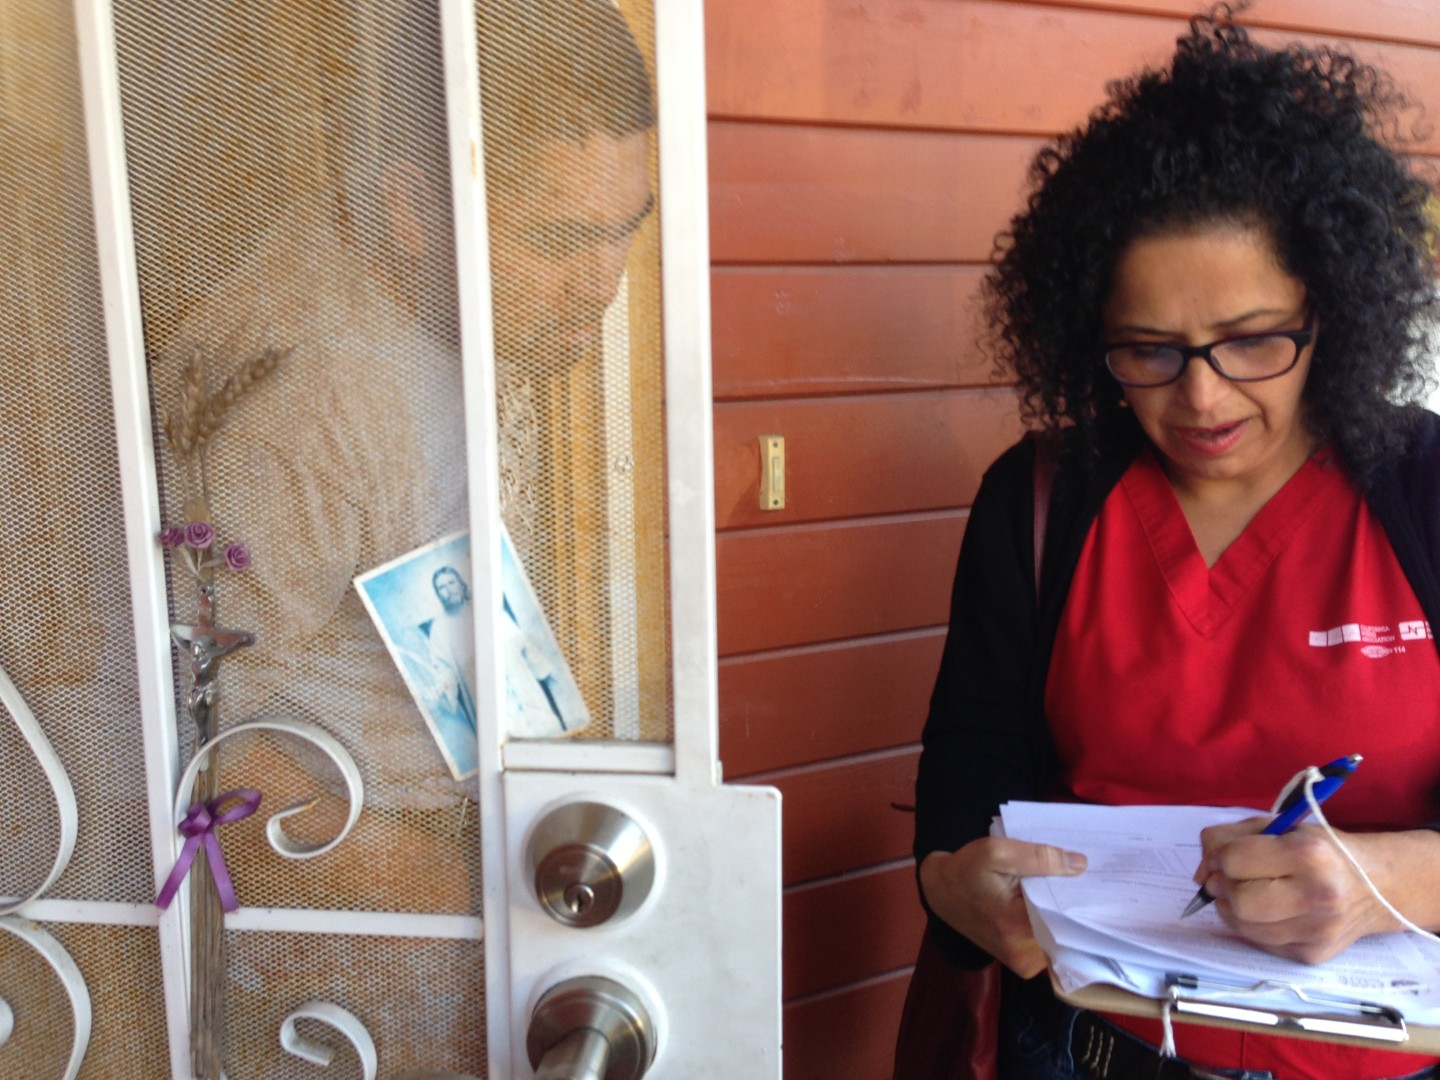 Maria Sahagun with the California Nurses Association is surveying the health of residents in Richmond's Parchester Village. (Julie Small/KQED)